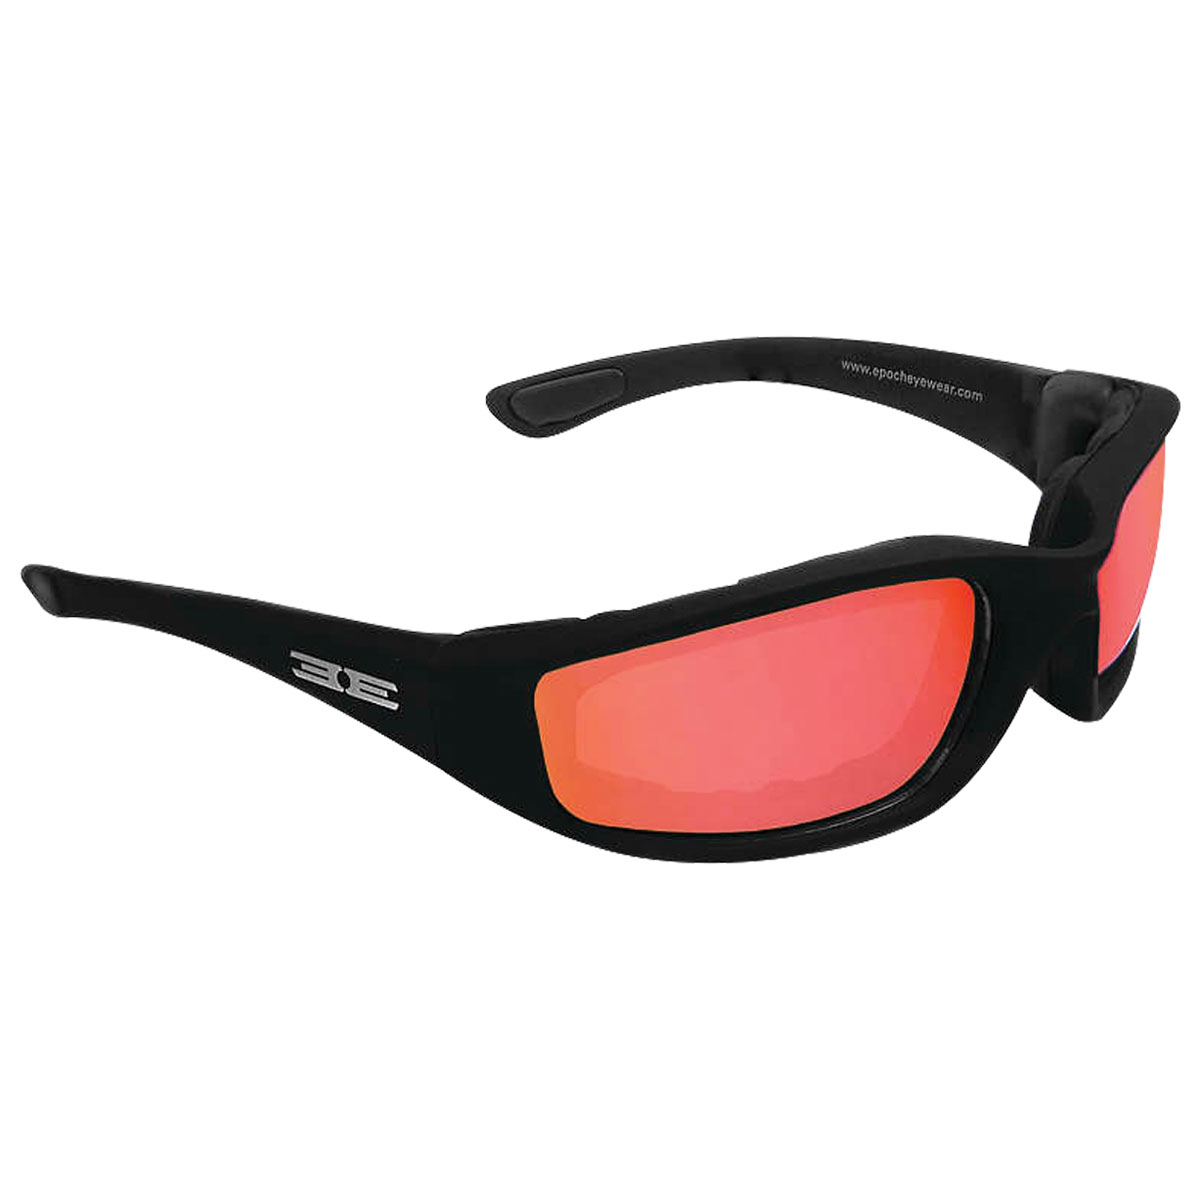 Epoch Eyewear Foam Black Sunglasses with Red Mirror Lens